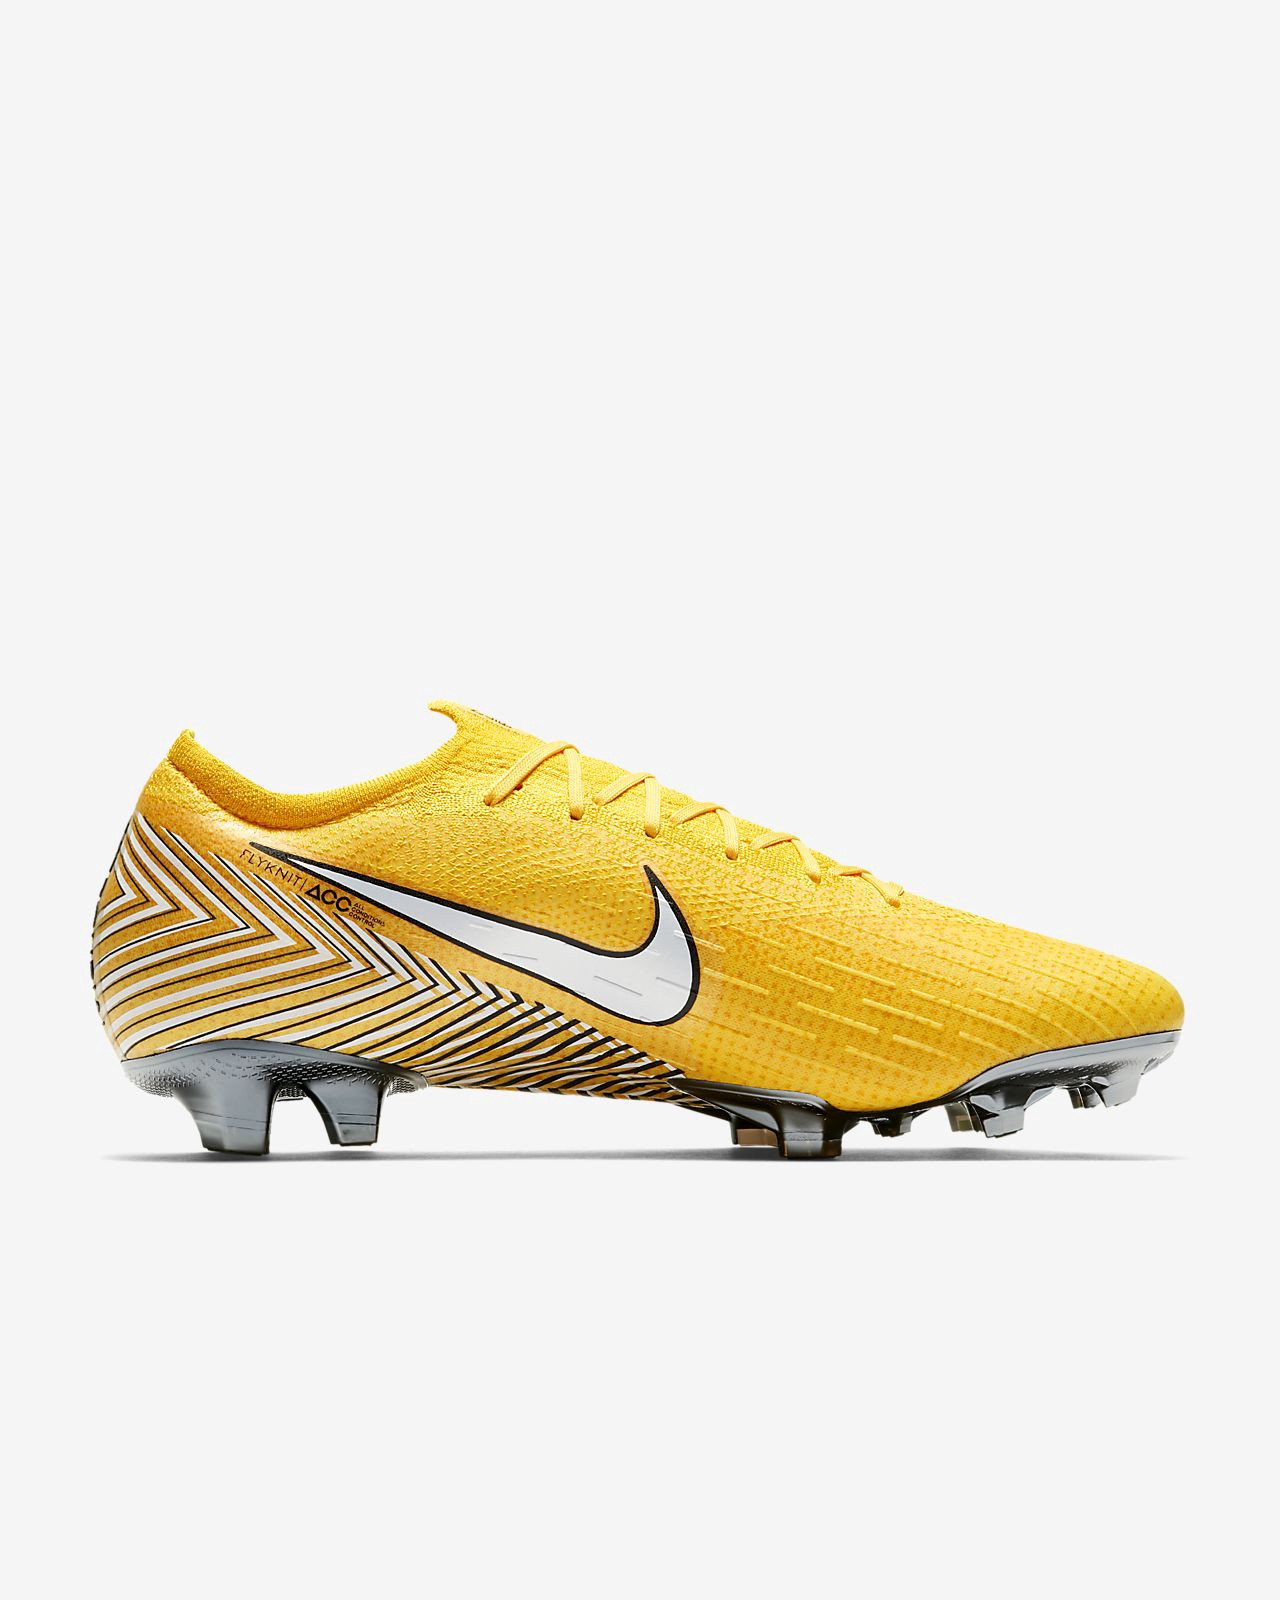 03ebcf32f Nike Mercurial Vapor 360 Elite Neymar Jr Fg Firm-Ground Soccer Cleat - M  11.5   W 13